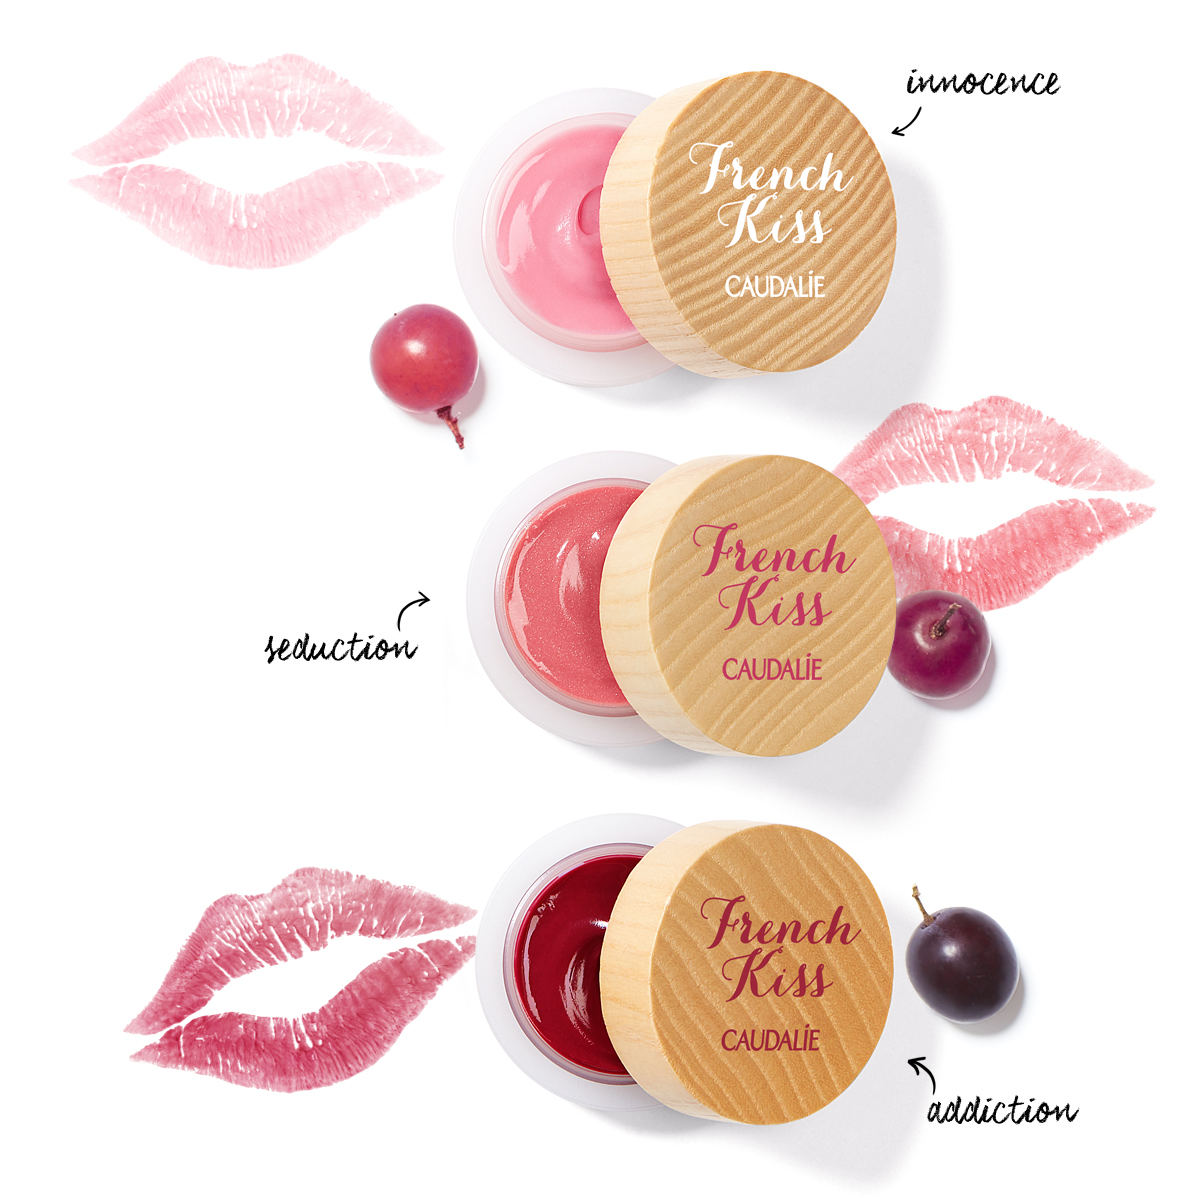 Caudalie-Instagram-FRENCHKISS-Product